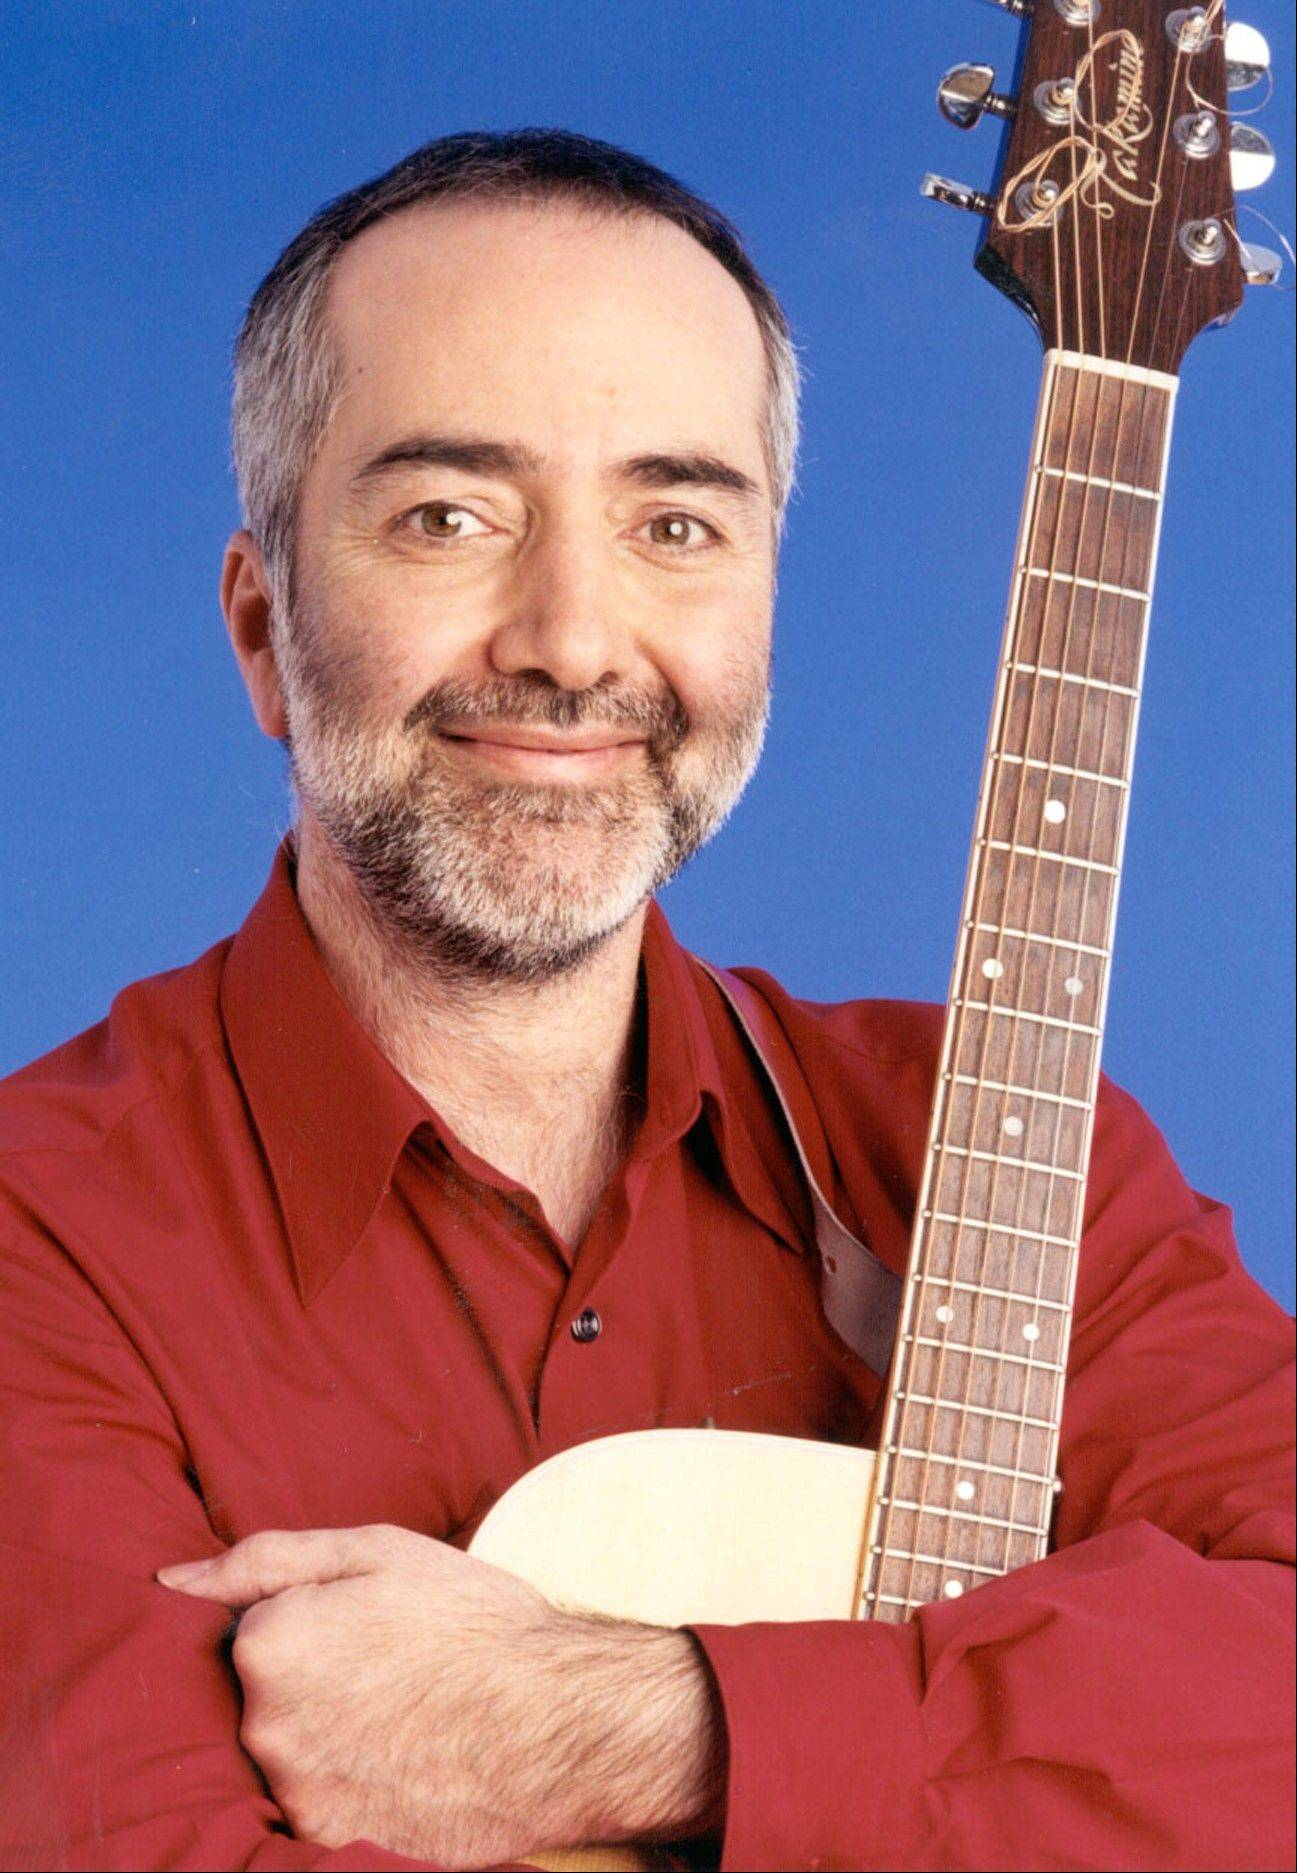 Children's entertainer Raffi will perform at the Paramount Theatre in Aurora at 1 p.m. Sunday, May 19.